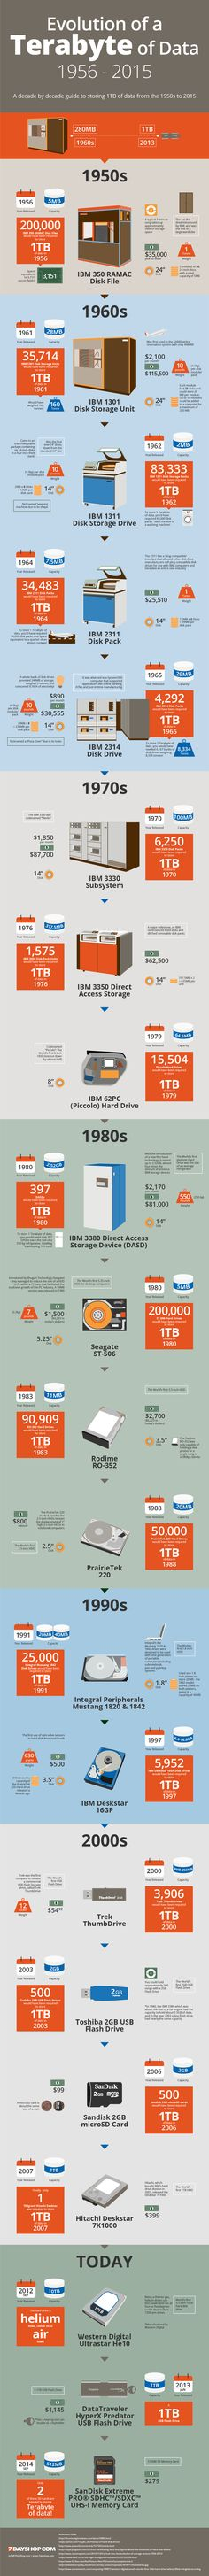 The Evolution of a Terabyte of Data: 1956 – 2014 [INFOGRAPHIC]